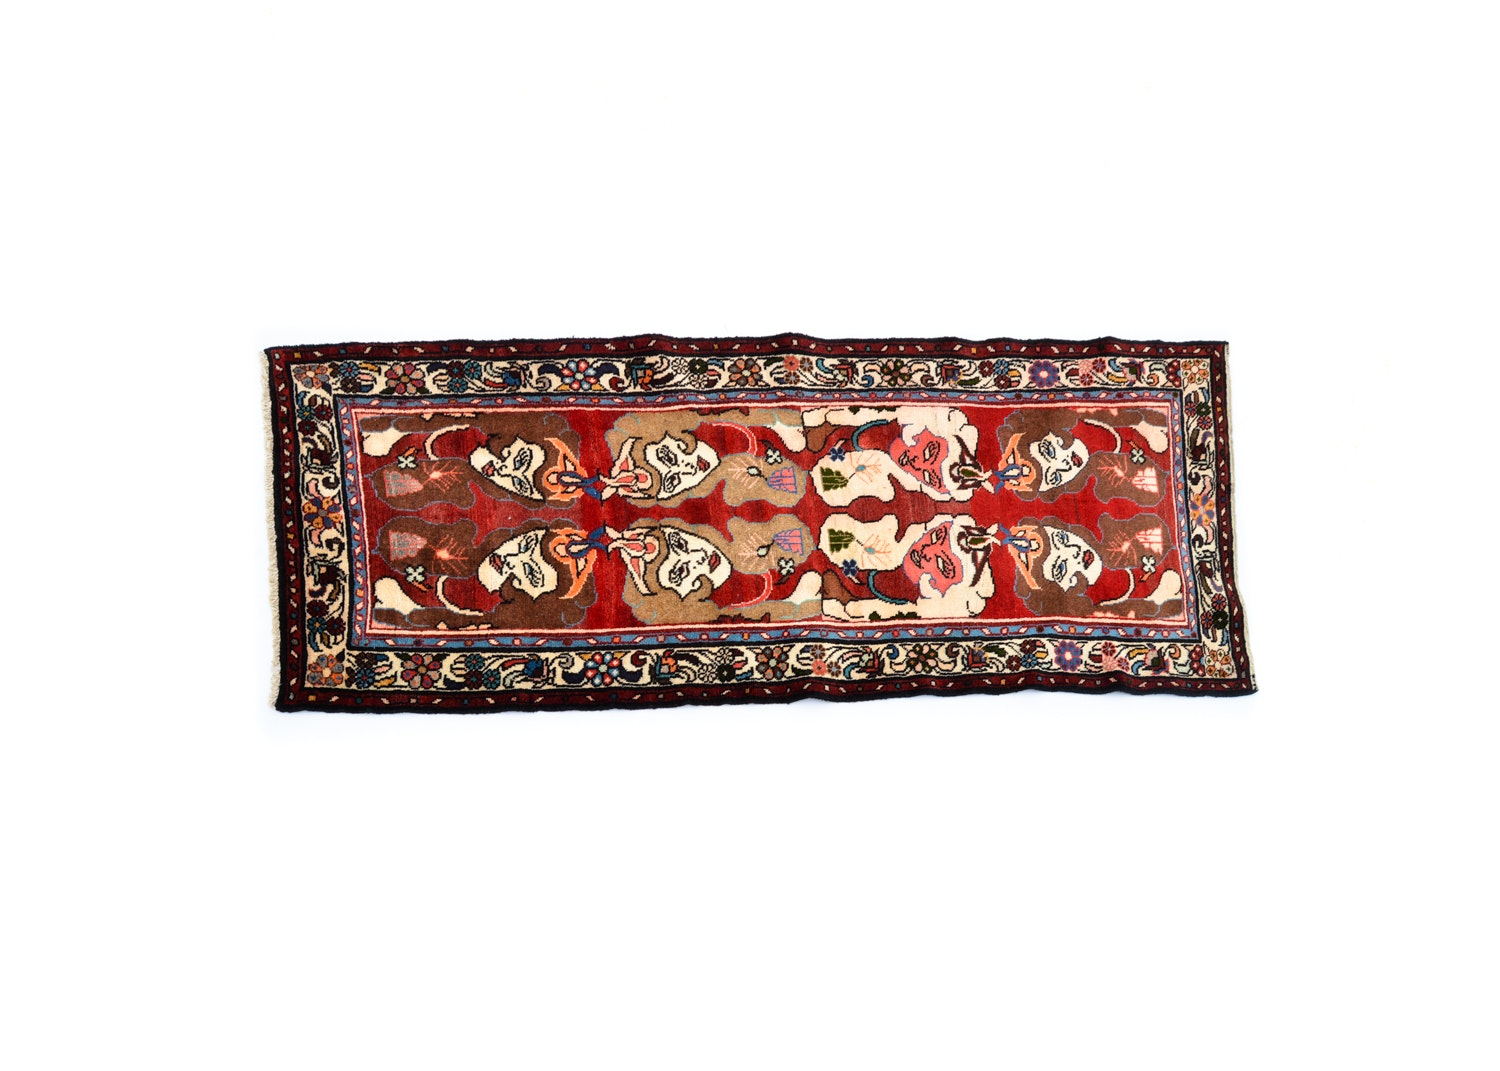 Hand-Knotted Persian Pictorial Carpet Runner